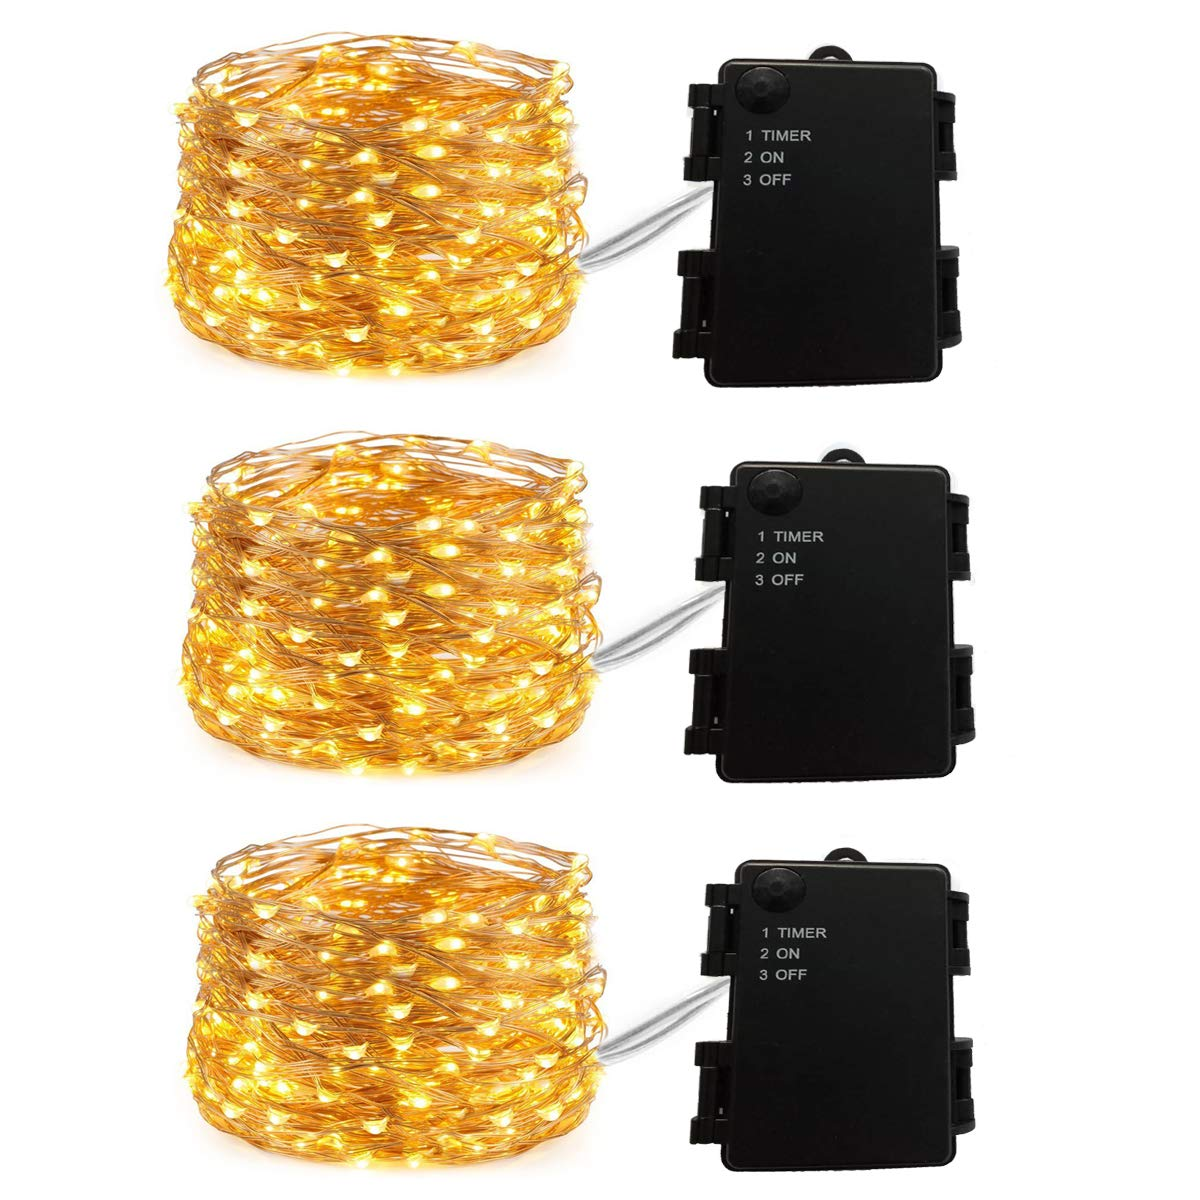 Improved Design with Timer 3 Sets Firefly Lights Battery Operated on 20ft Long 60 LEDs Fairy Lights Copper Wire Lights Waterproof Battery Box 6 Hours on/18 Hours Off, for Indoor and Outdoor Use